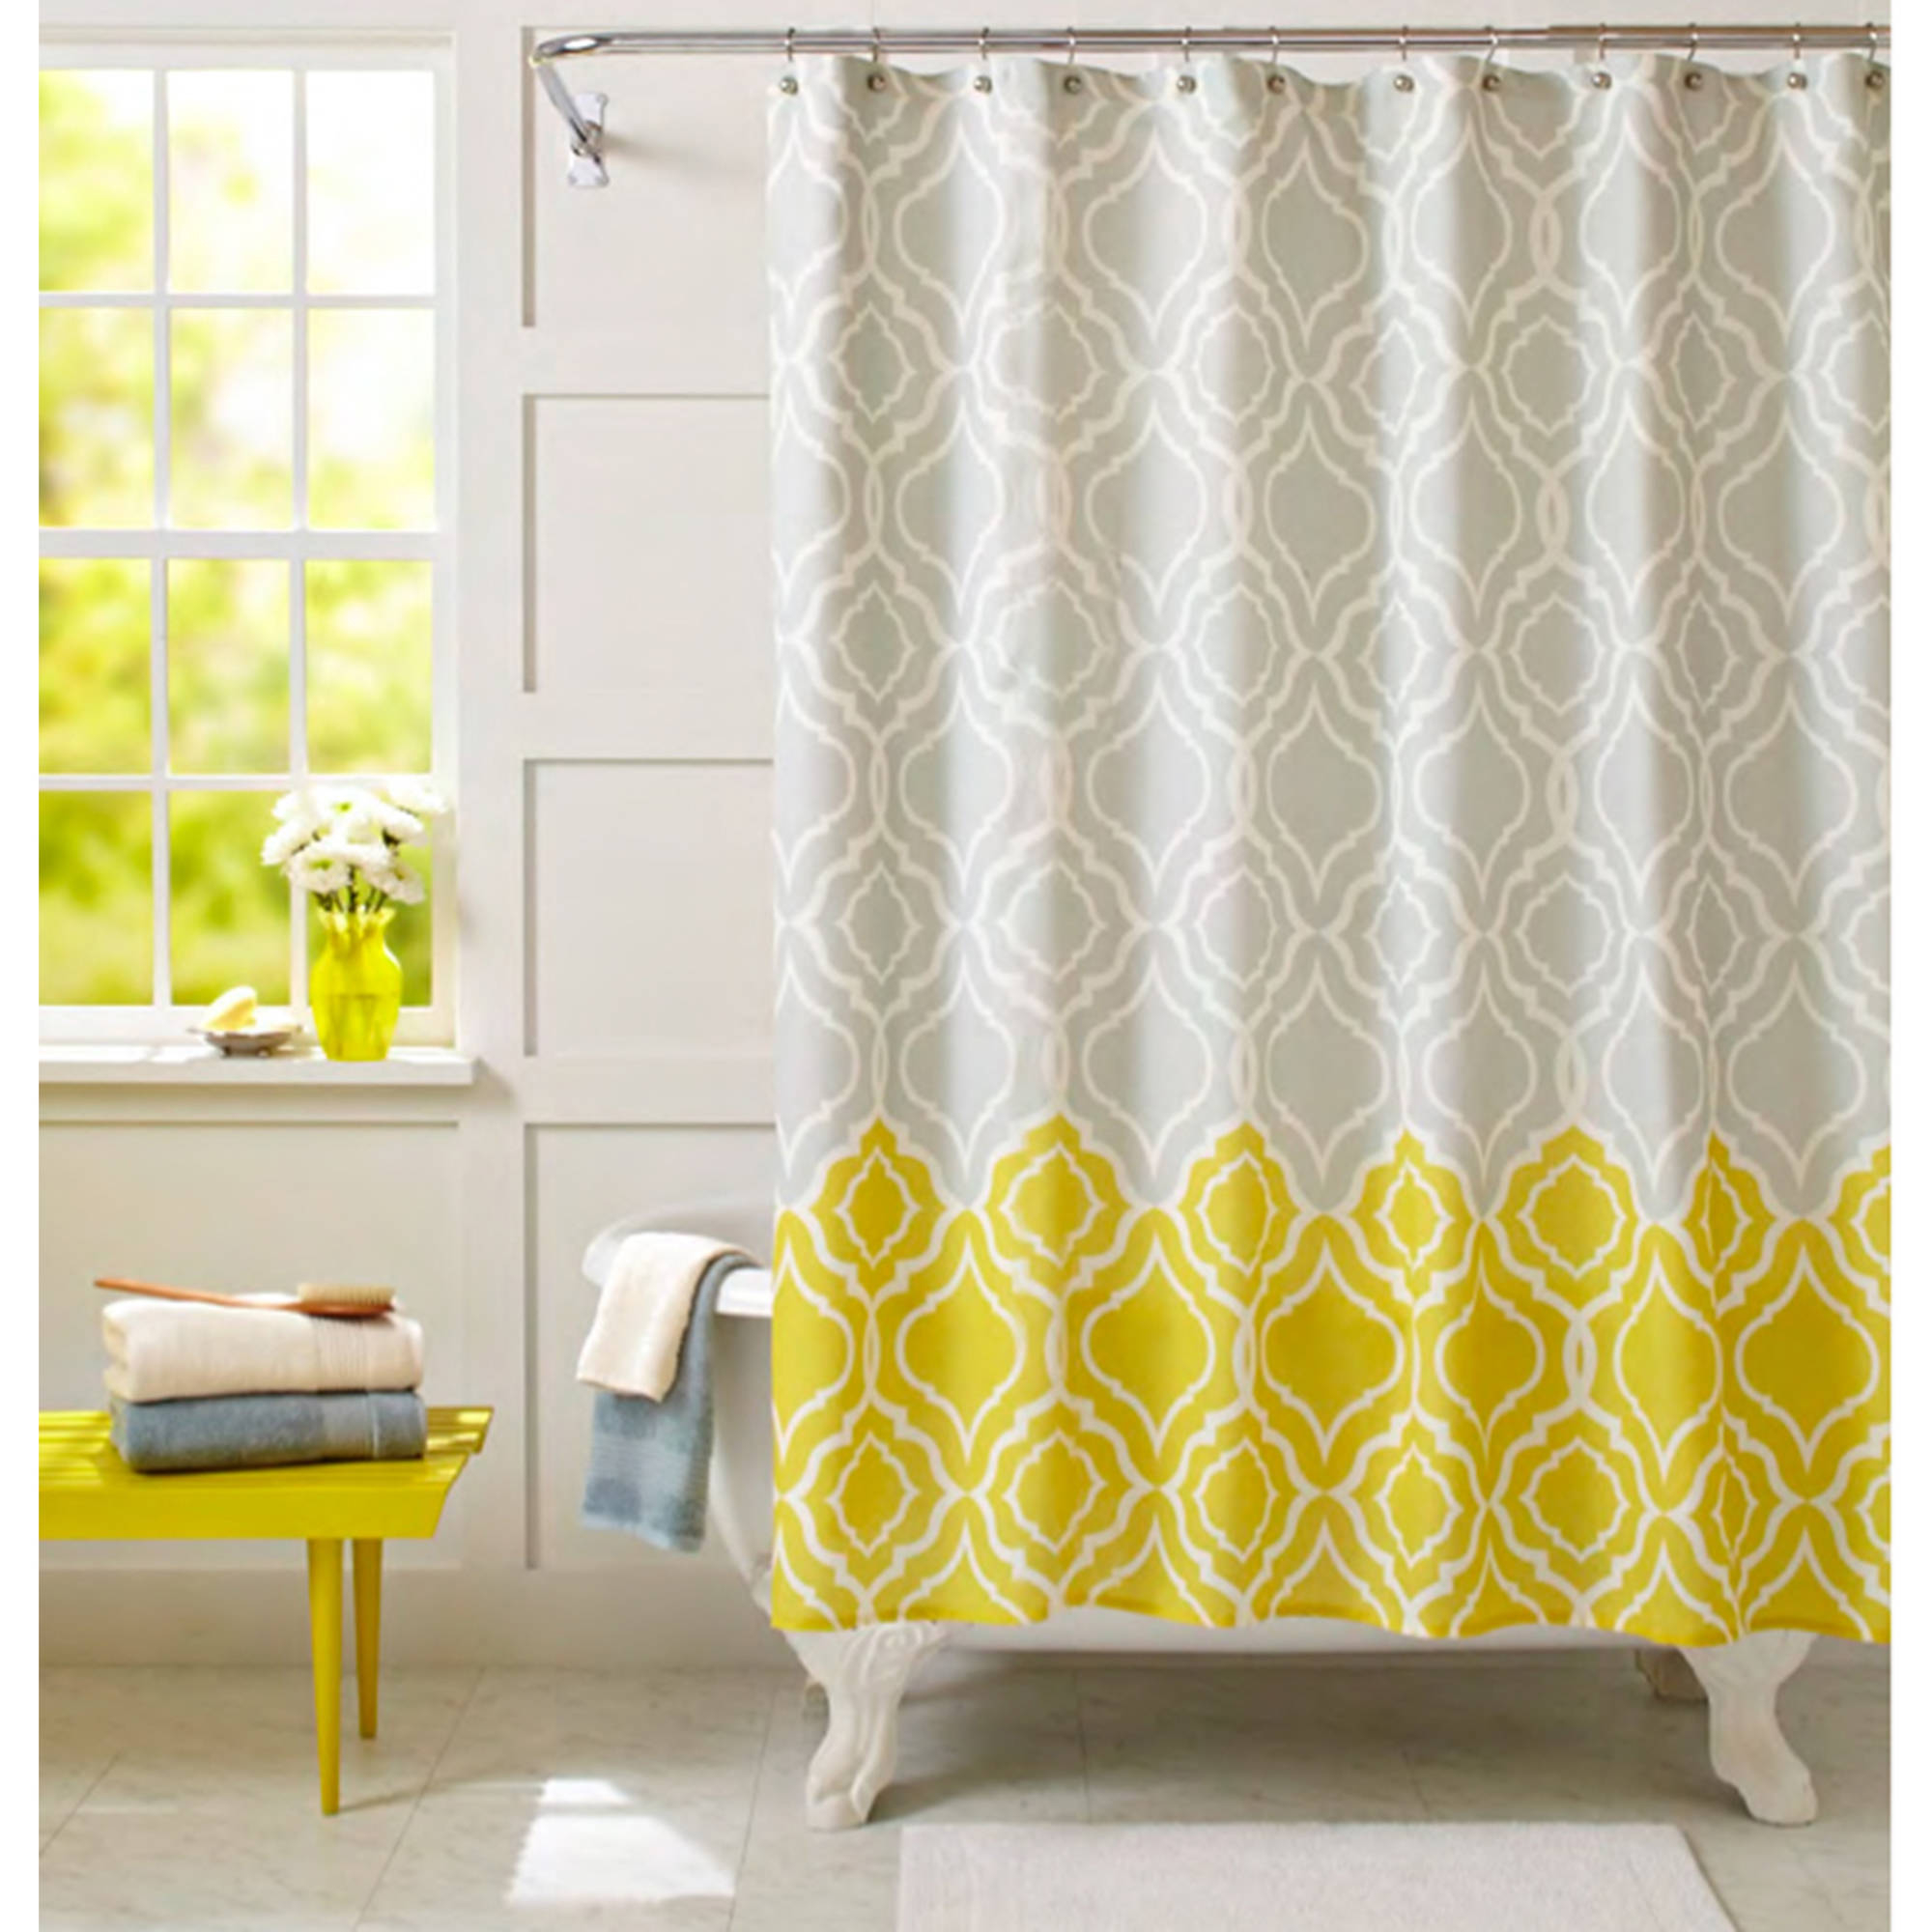 Coffee Tables Grey Window Valance Ombre Ruffle Shower Curtain throughout sizing 2000 X 2000